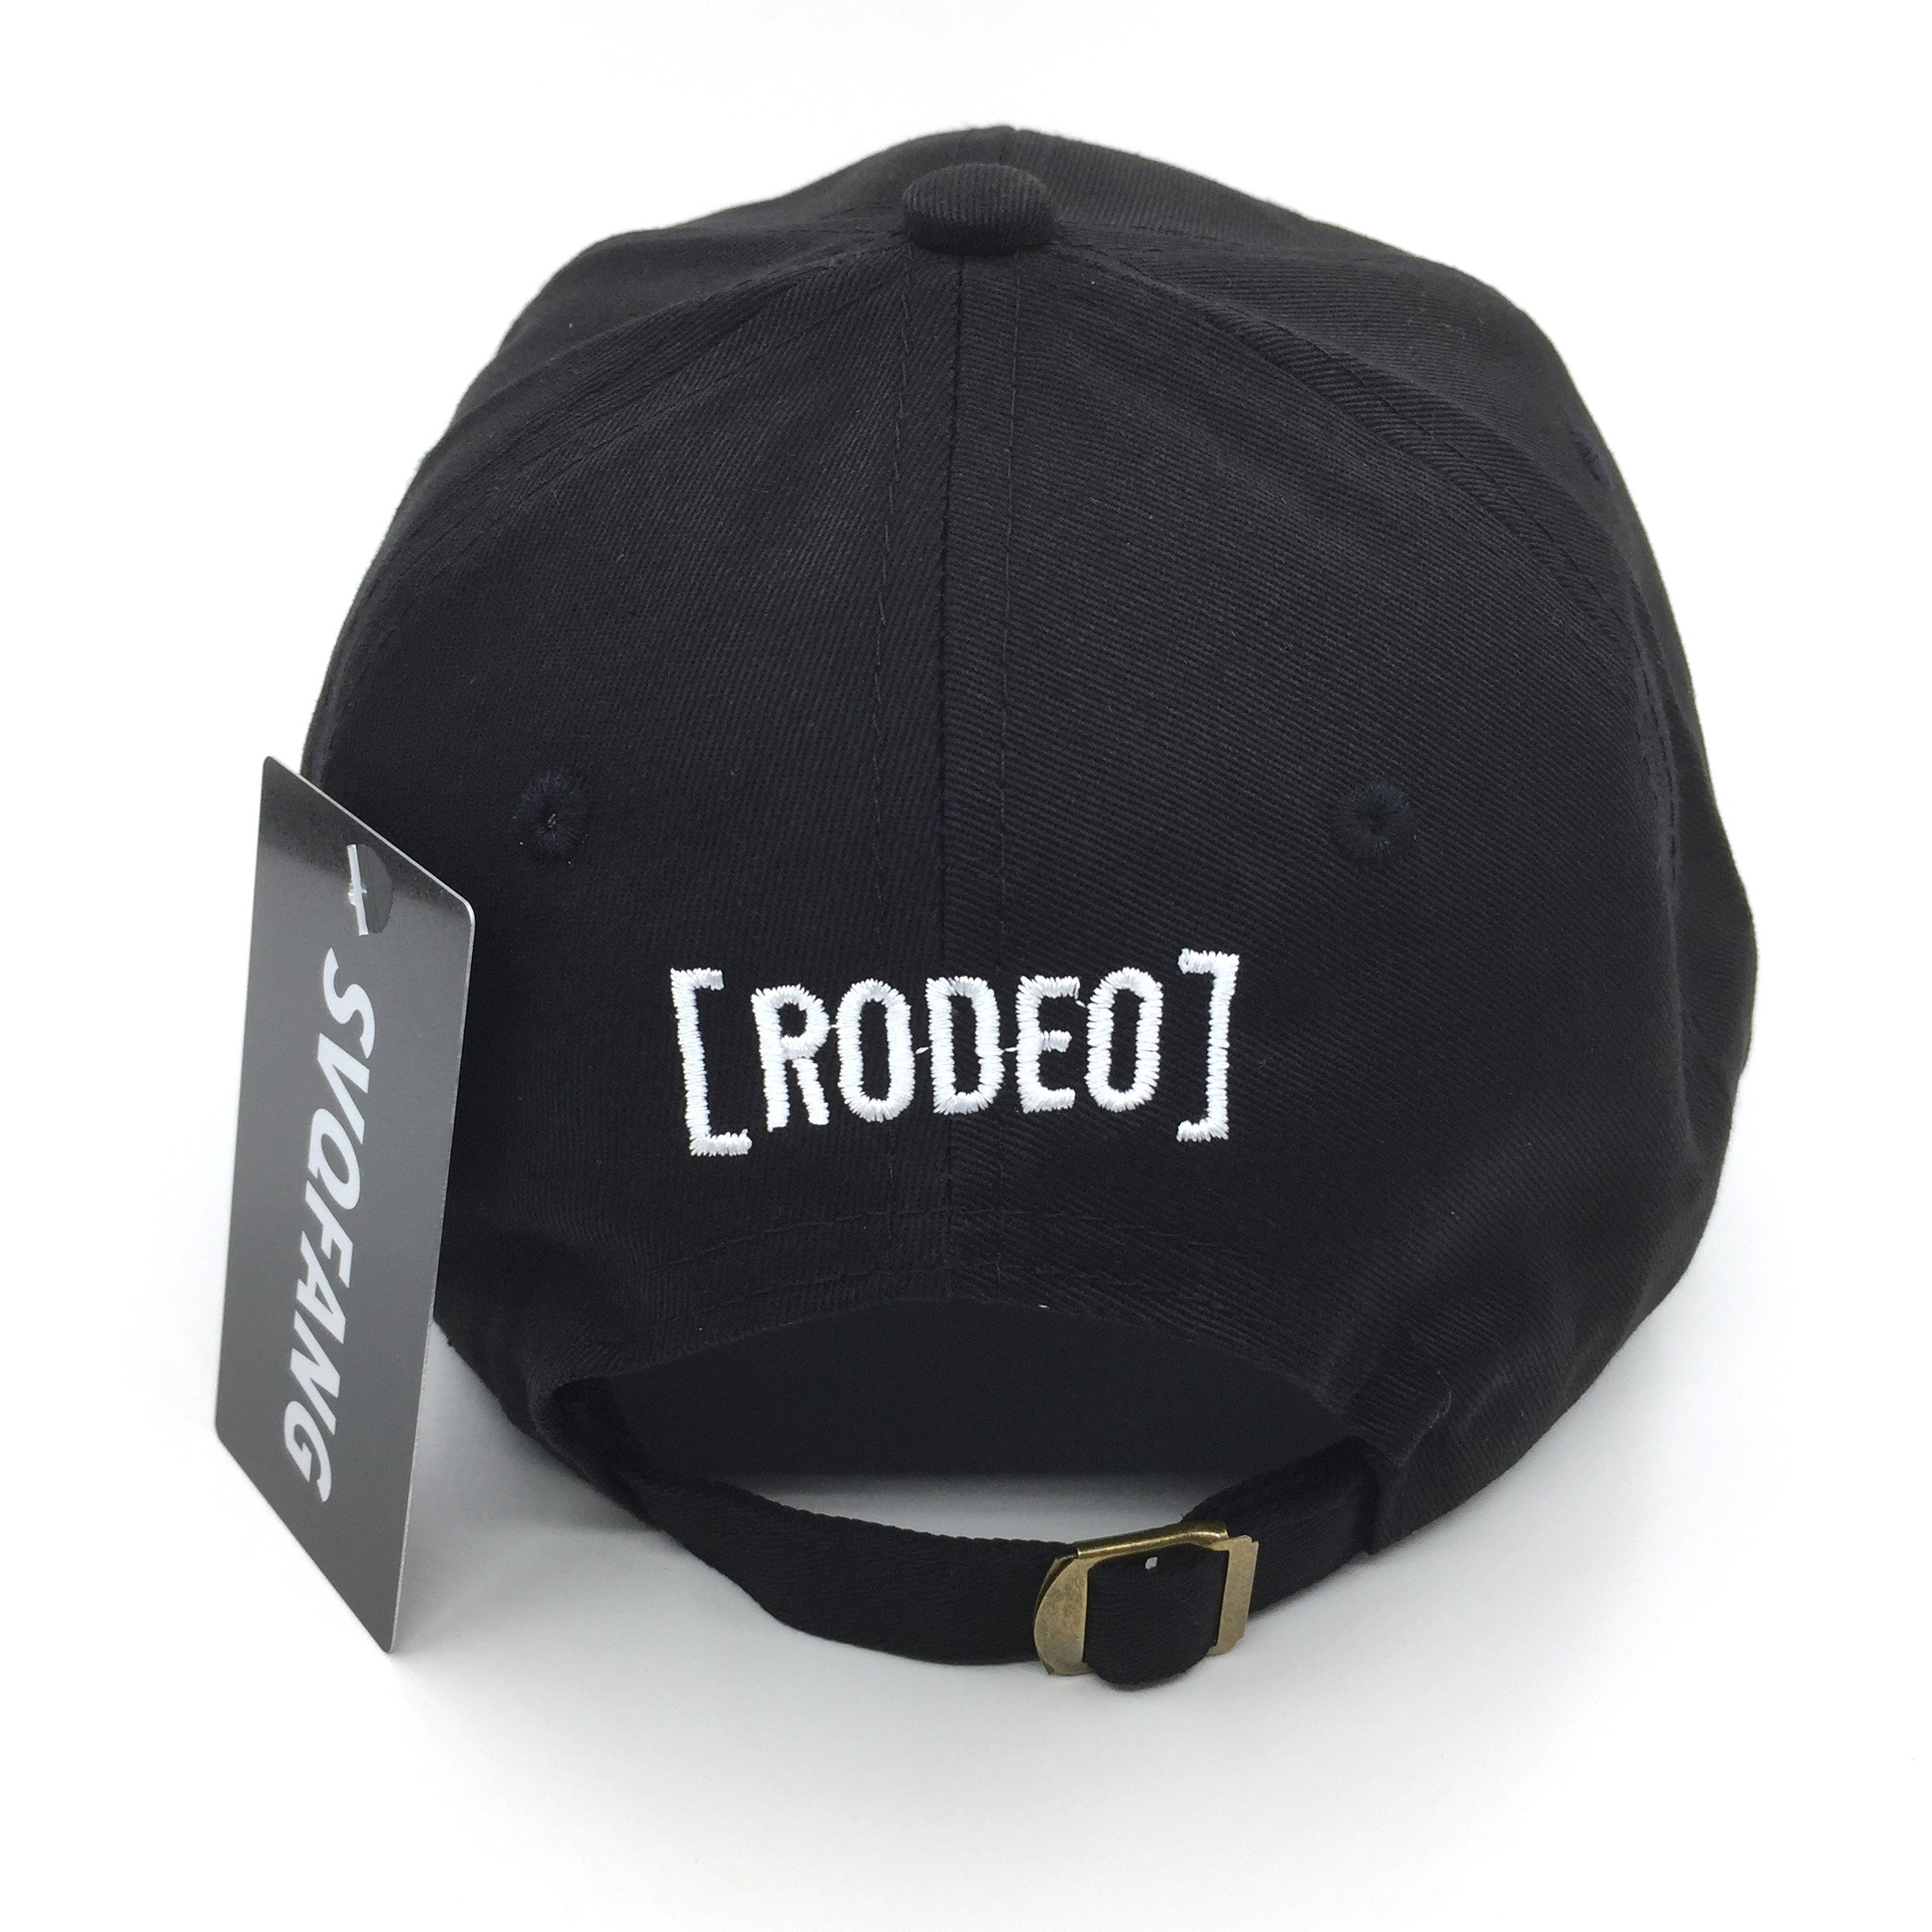 4289181684f4fd Travis Scott Rodeo Hat Cap Tour Merch Cactus Travi$ Strapback Black New:  0742920656768: Amazon.com: Books